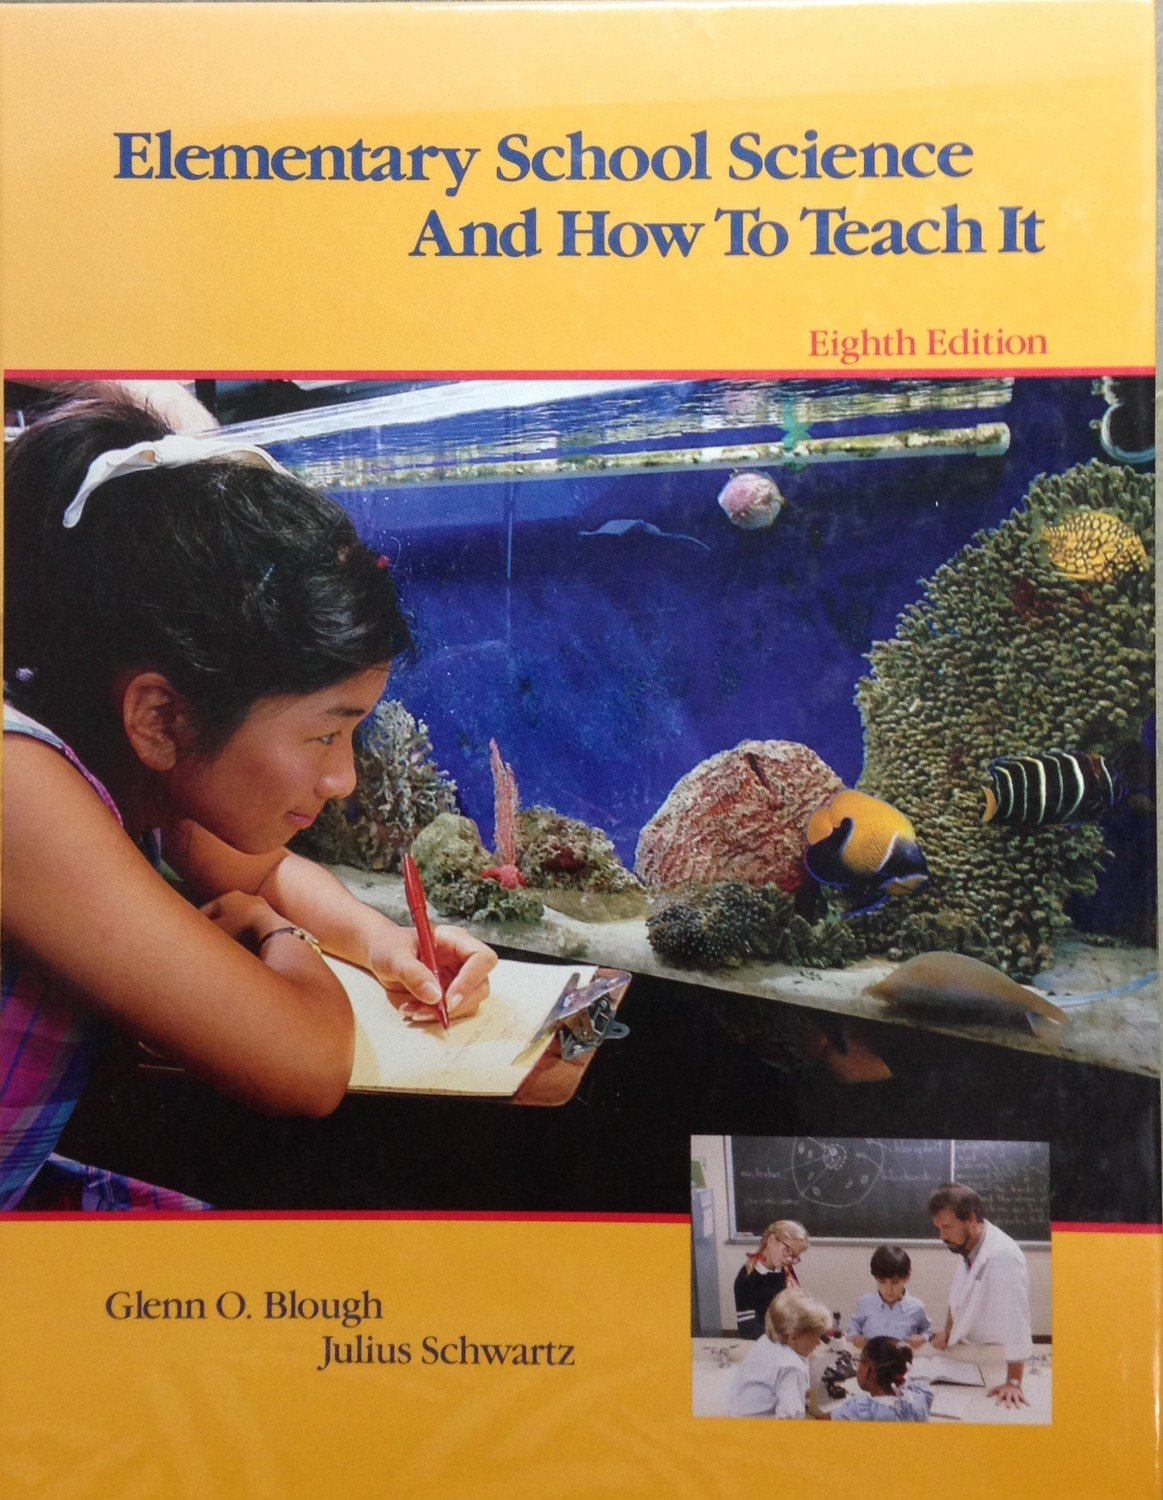 Elementary School Science and How to Teach It:  Eighth Edition